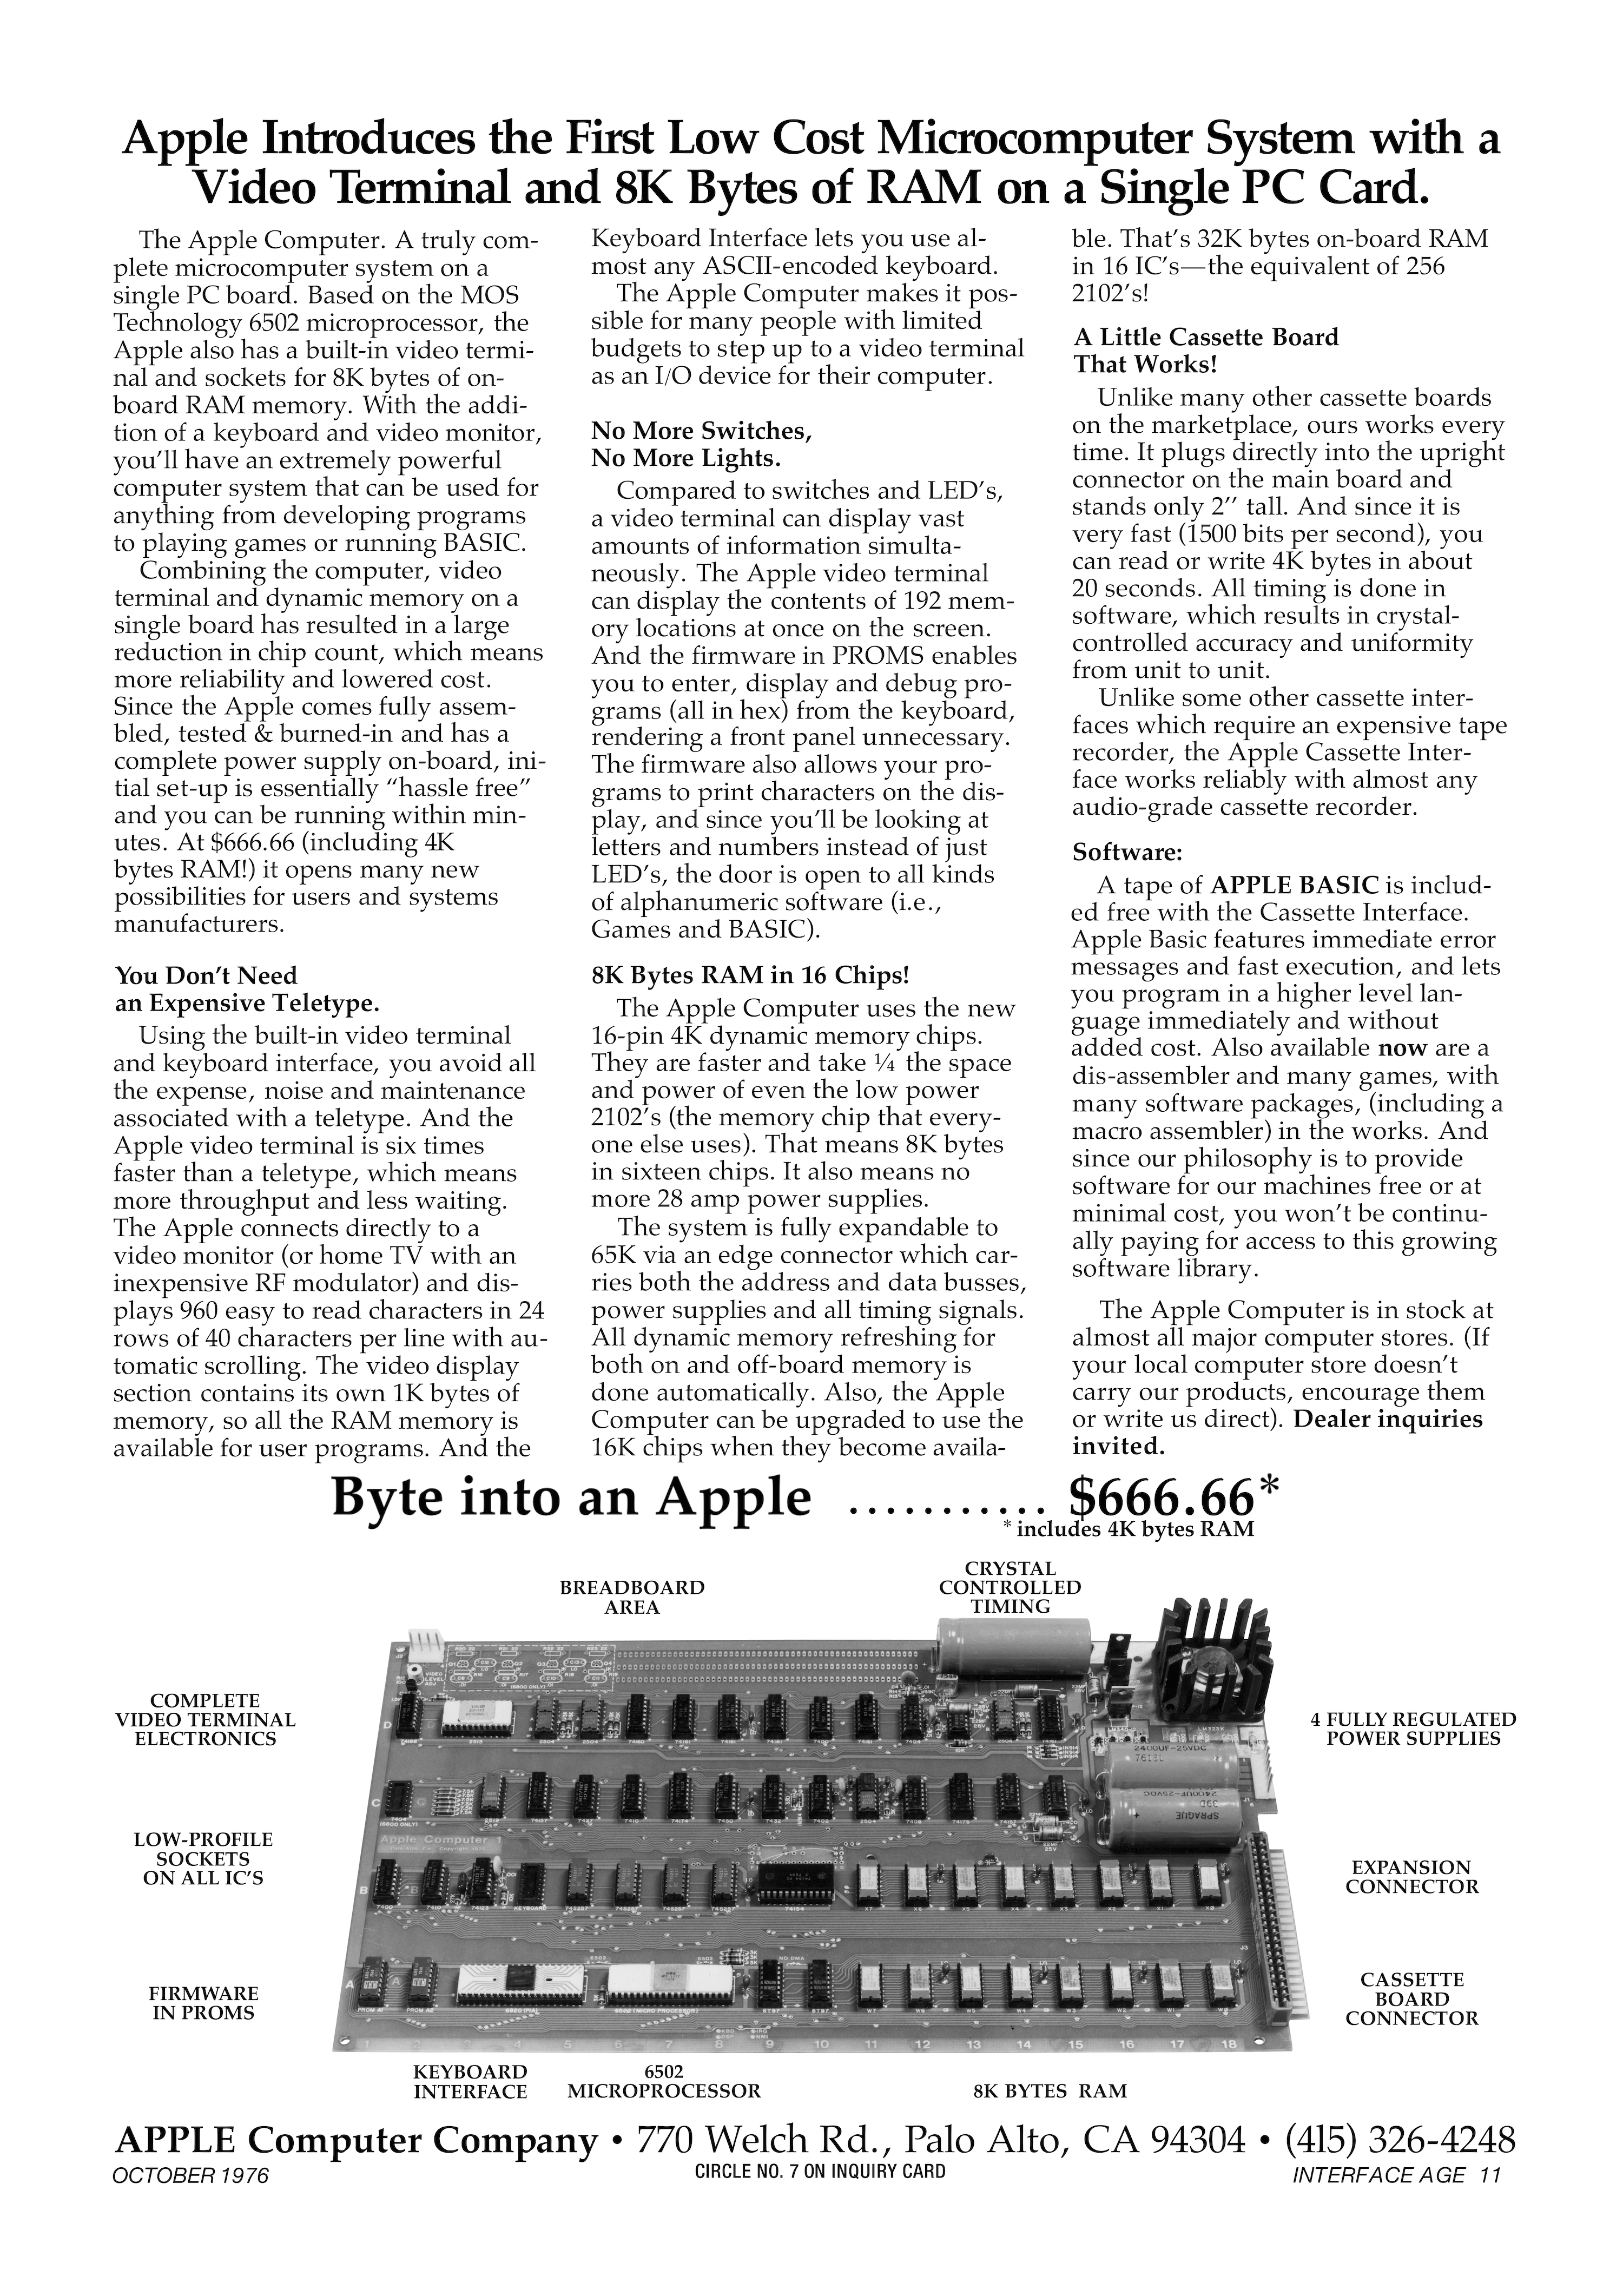 Re-Designed Apple-1 Advertisement published in 1976